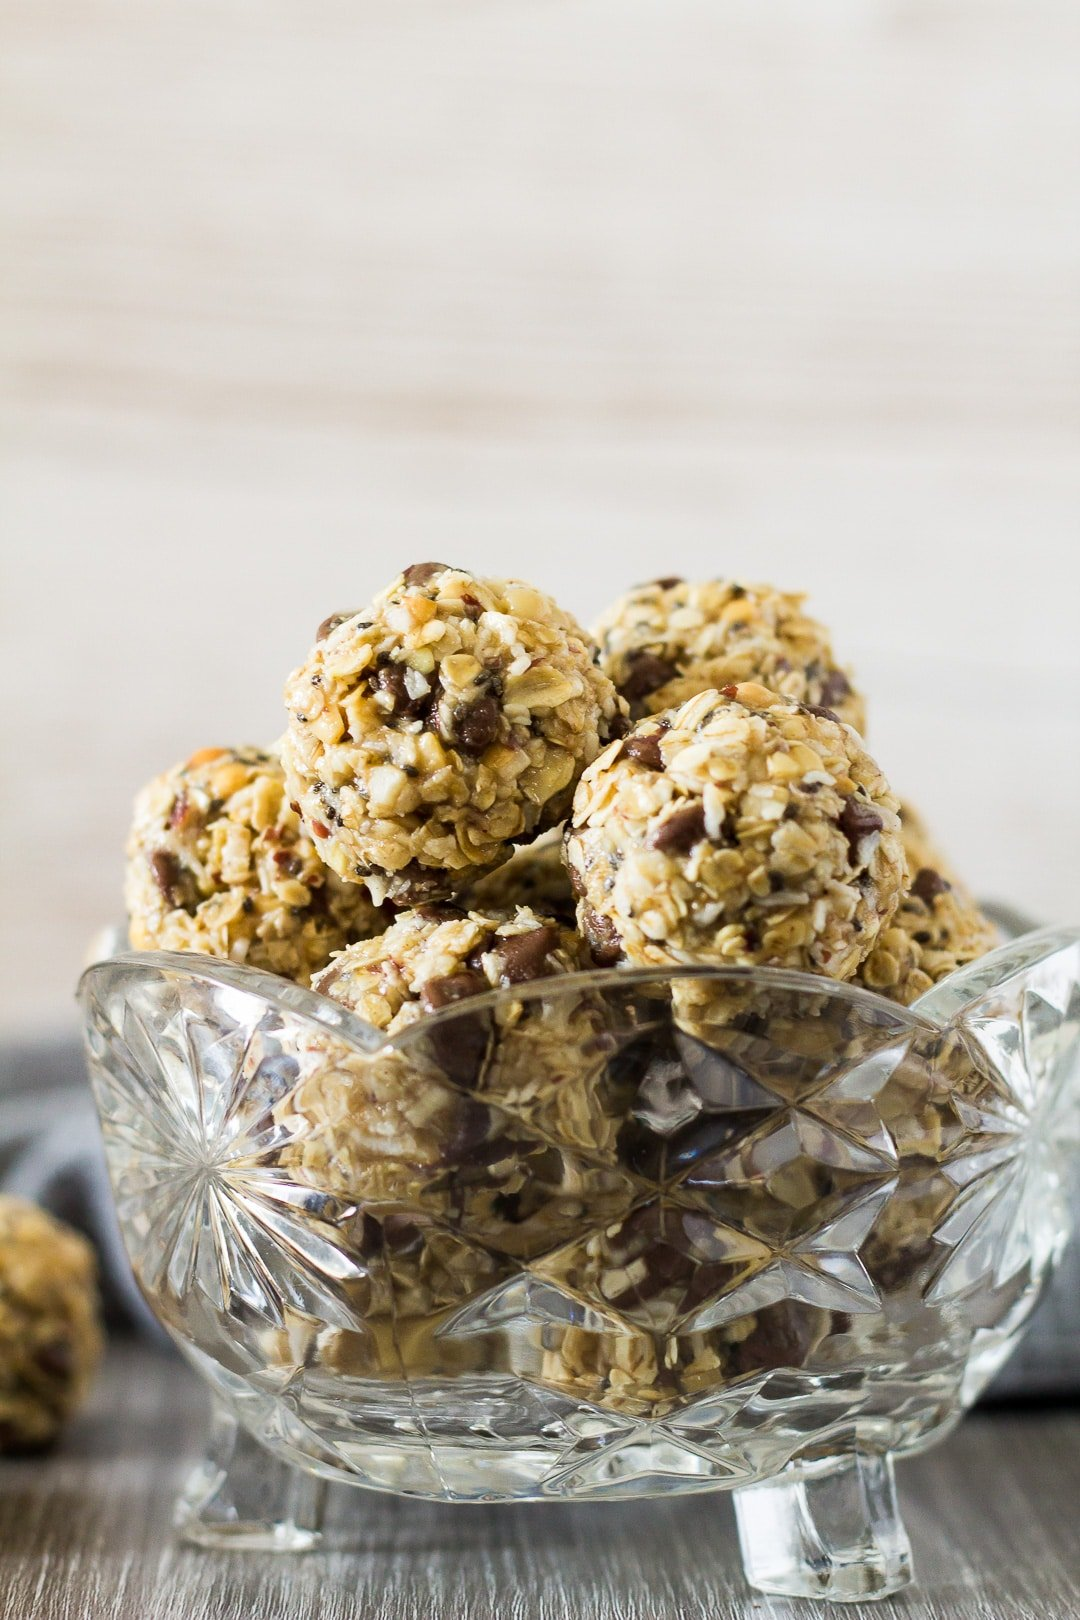 No-Bake Peanut Butter Coconut Energy Bites arranged in a small glass bowl.